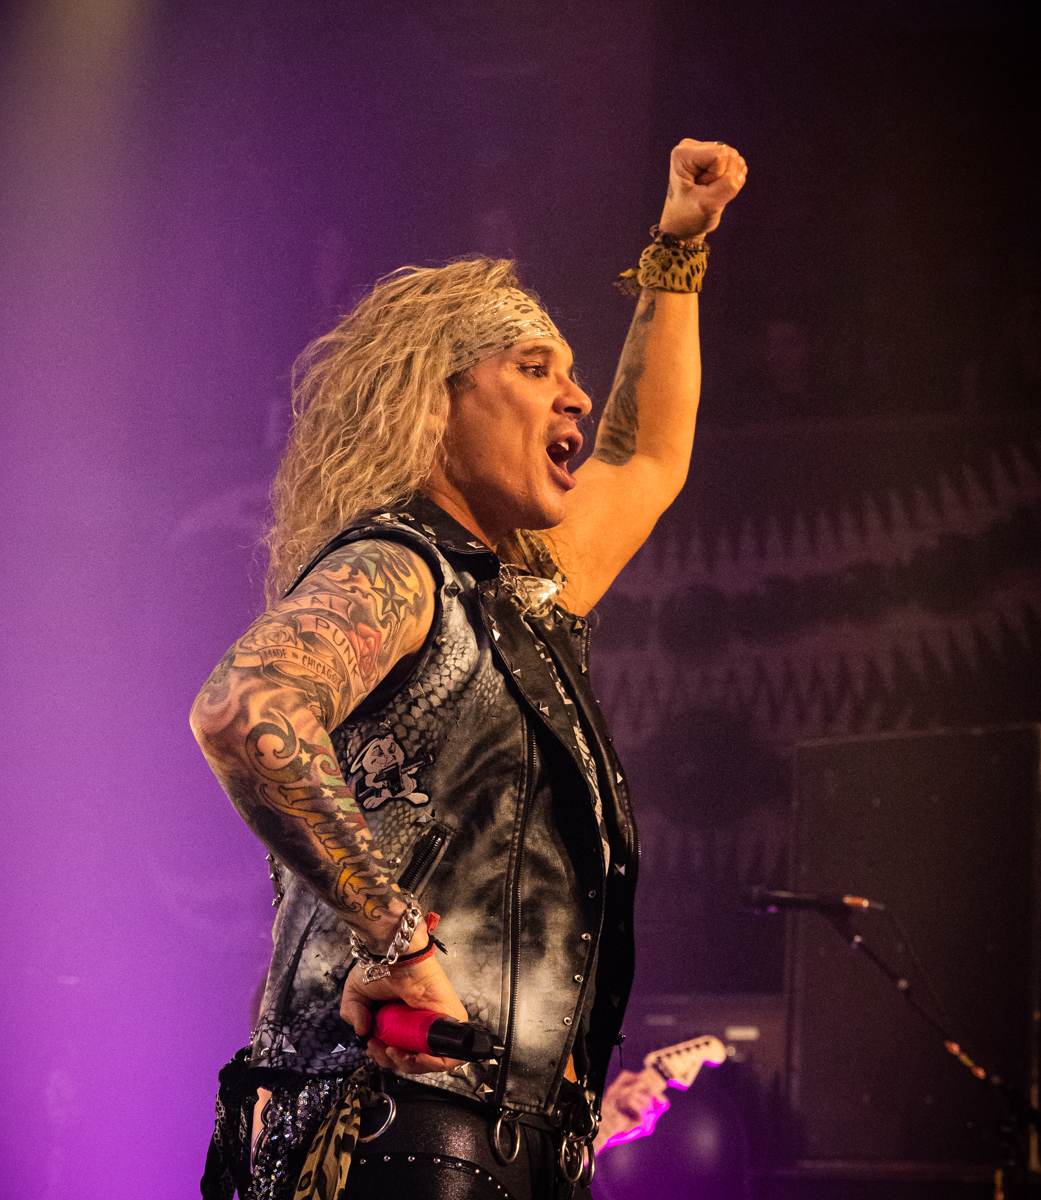 SteelPanther-HouseofBlues-Chicago_IL-20191208-IanBardecki-122